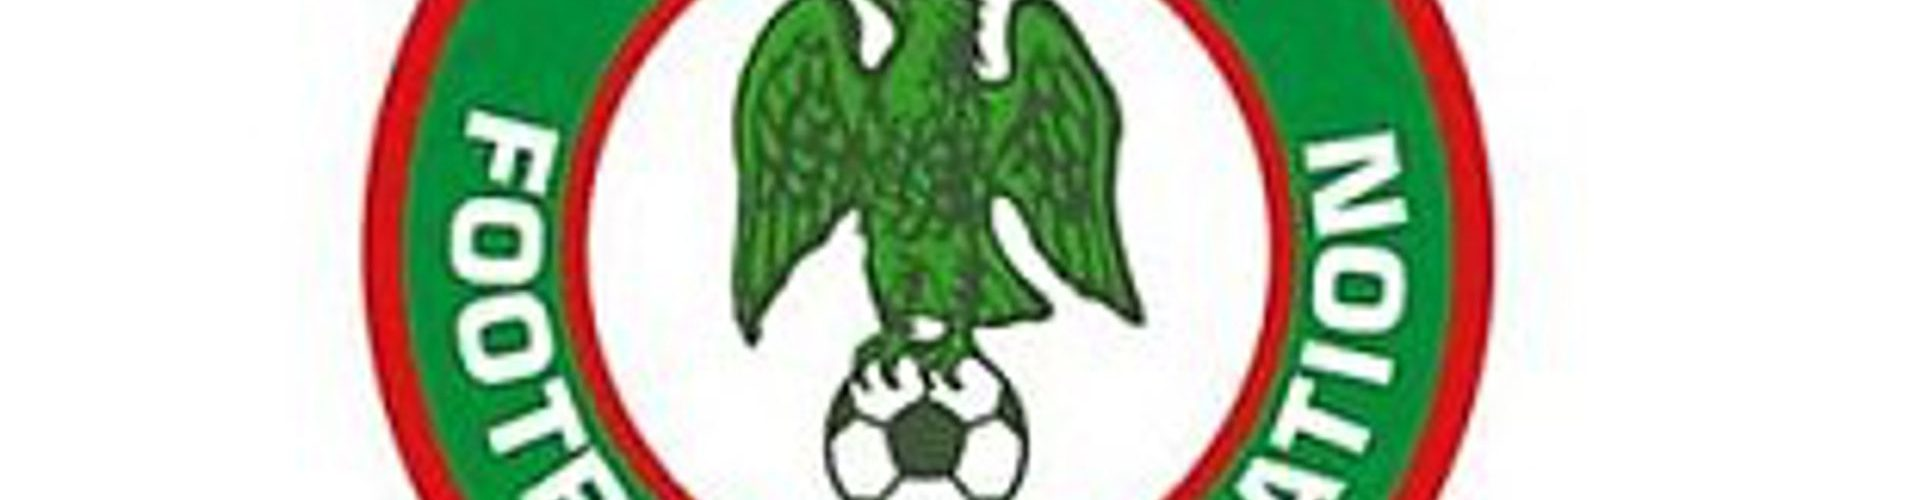 NFF Set To Support League Clubs For Next Season's Campaign